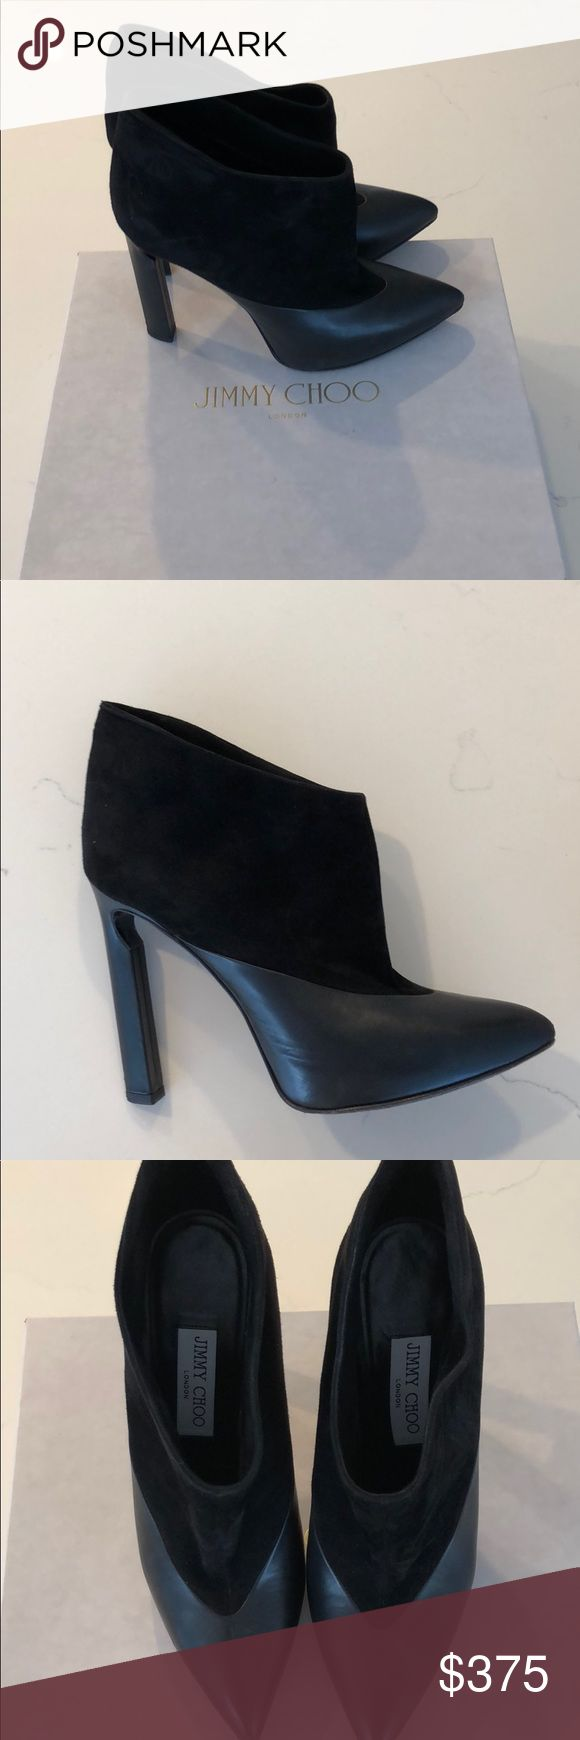 Suede/Napa Jimmy Choo ankle booties 39 Gorgeous suede and Napa leather pointed toe ankle boots. Bought at Jimmy Choo South Coast Plaza store last year for $1195 + tax. Comes with original box and shoe dust bag. Jimmy Choo Shoes Ankle Boots & Booties